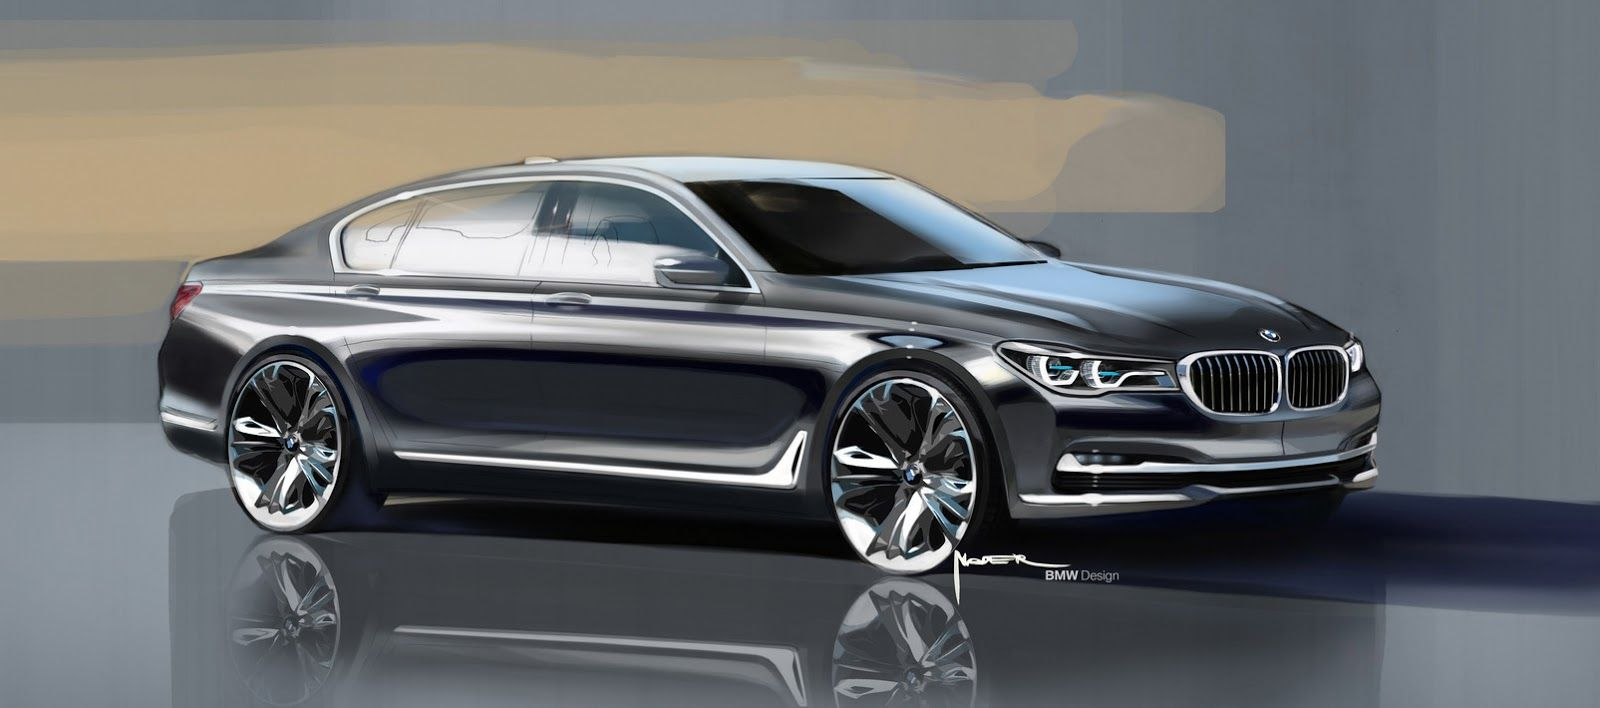 The All-New 2016 BMW 7-Series In 169 Photos And Full Details